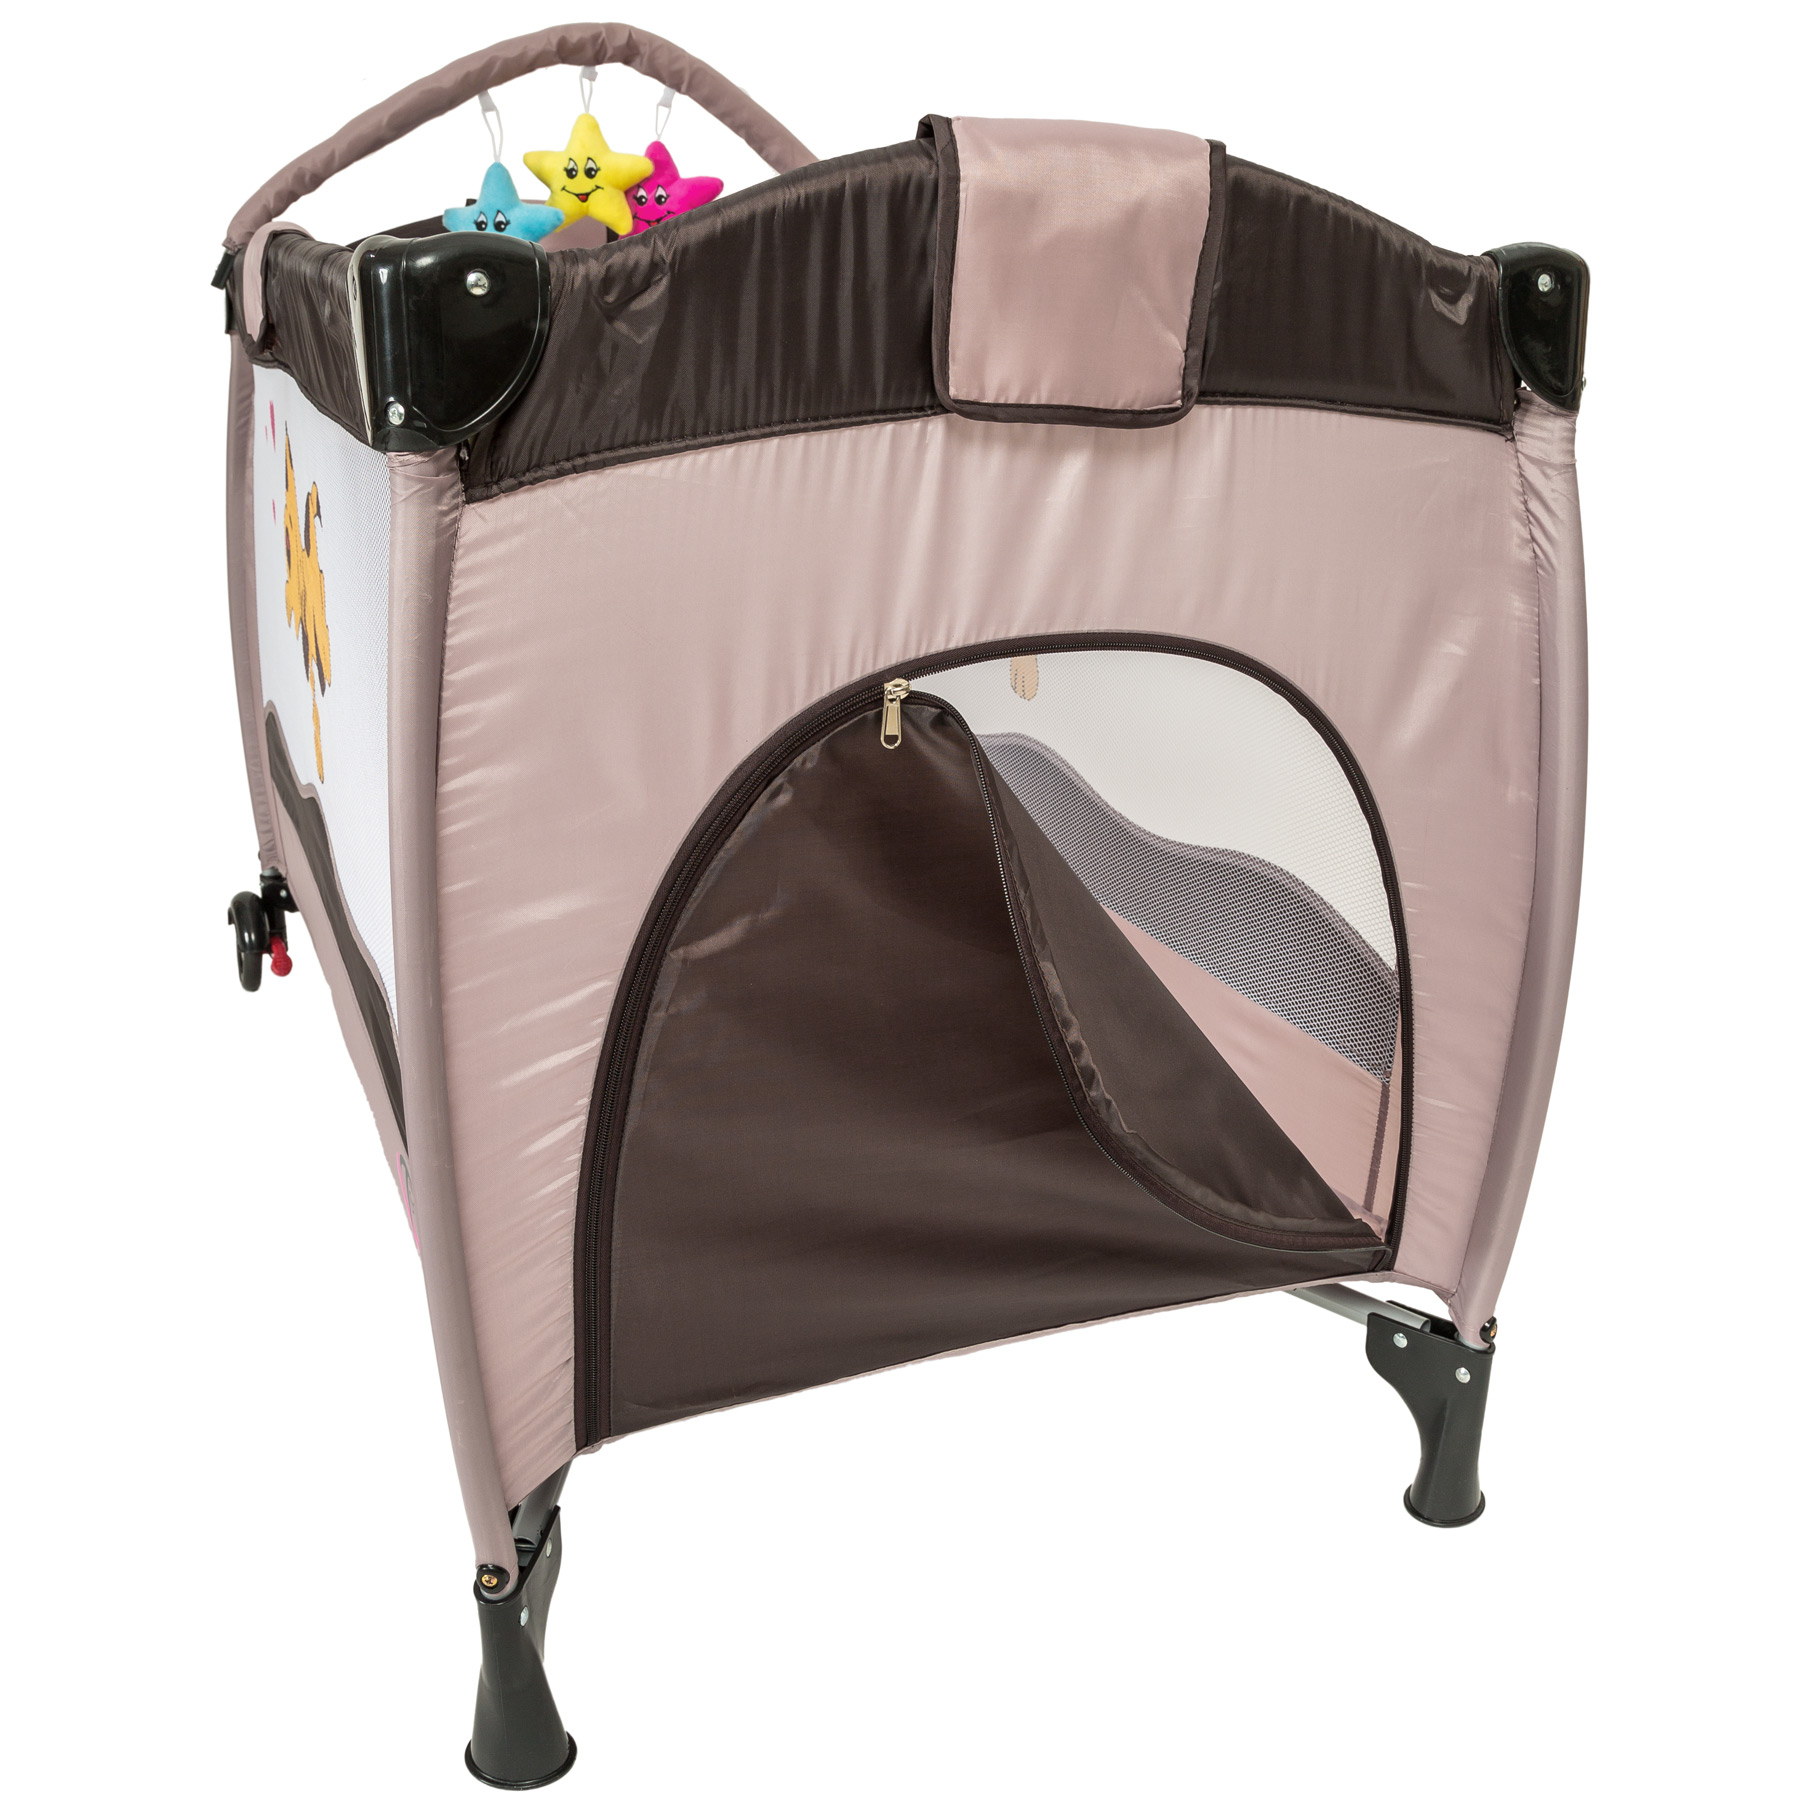 portable infant child baby travel cot bed playpen bassinet with entryway new ebay. Black Bedroom Furniture Sets. Home Design Ideas